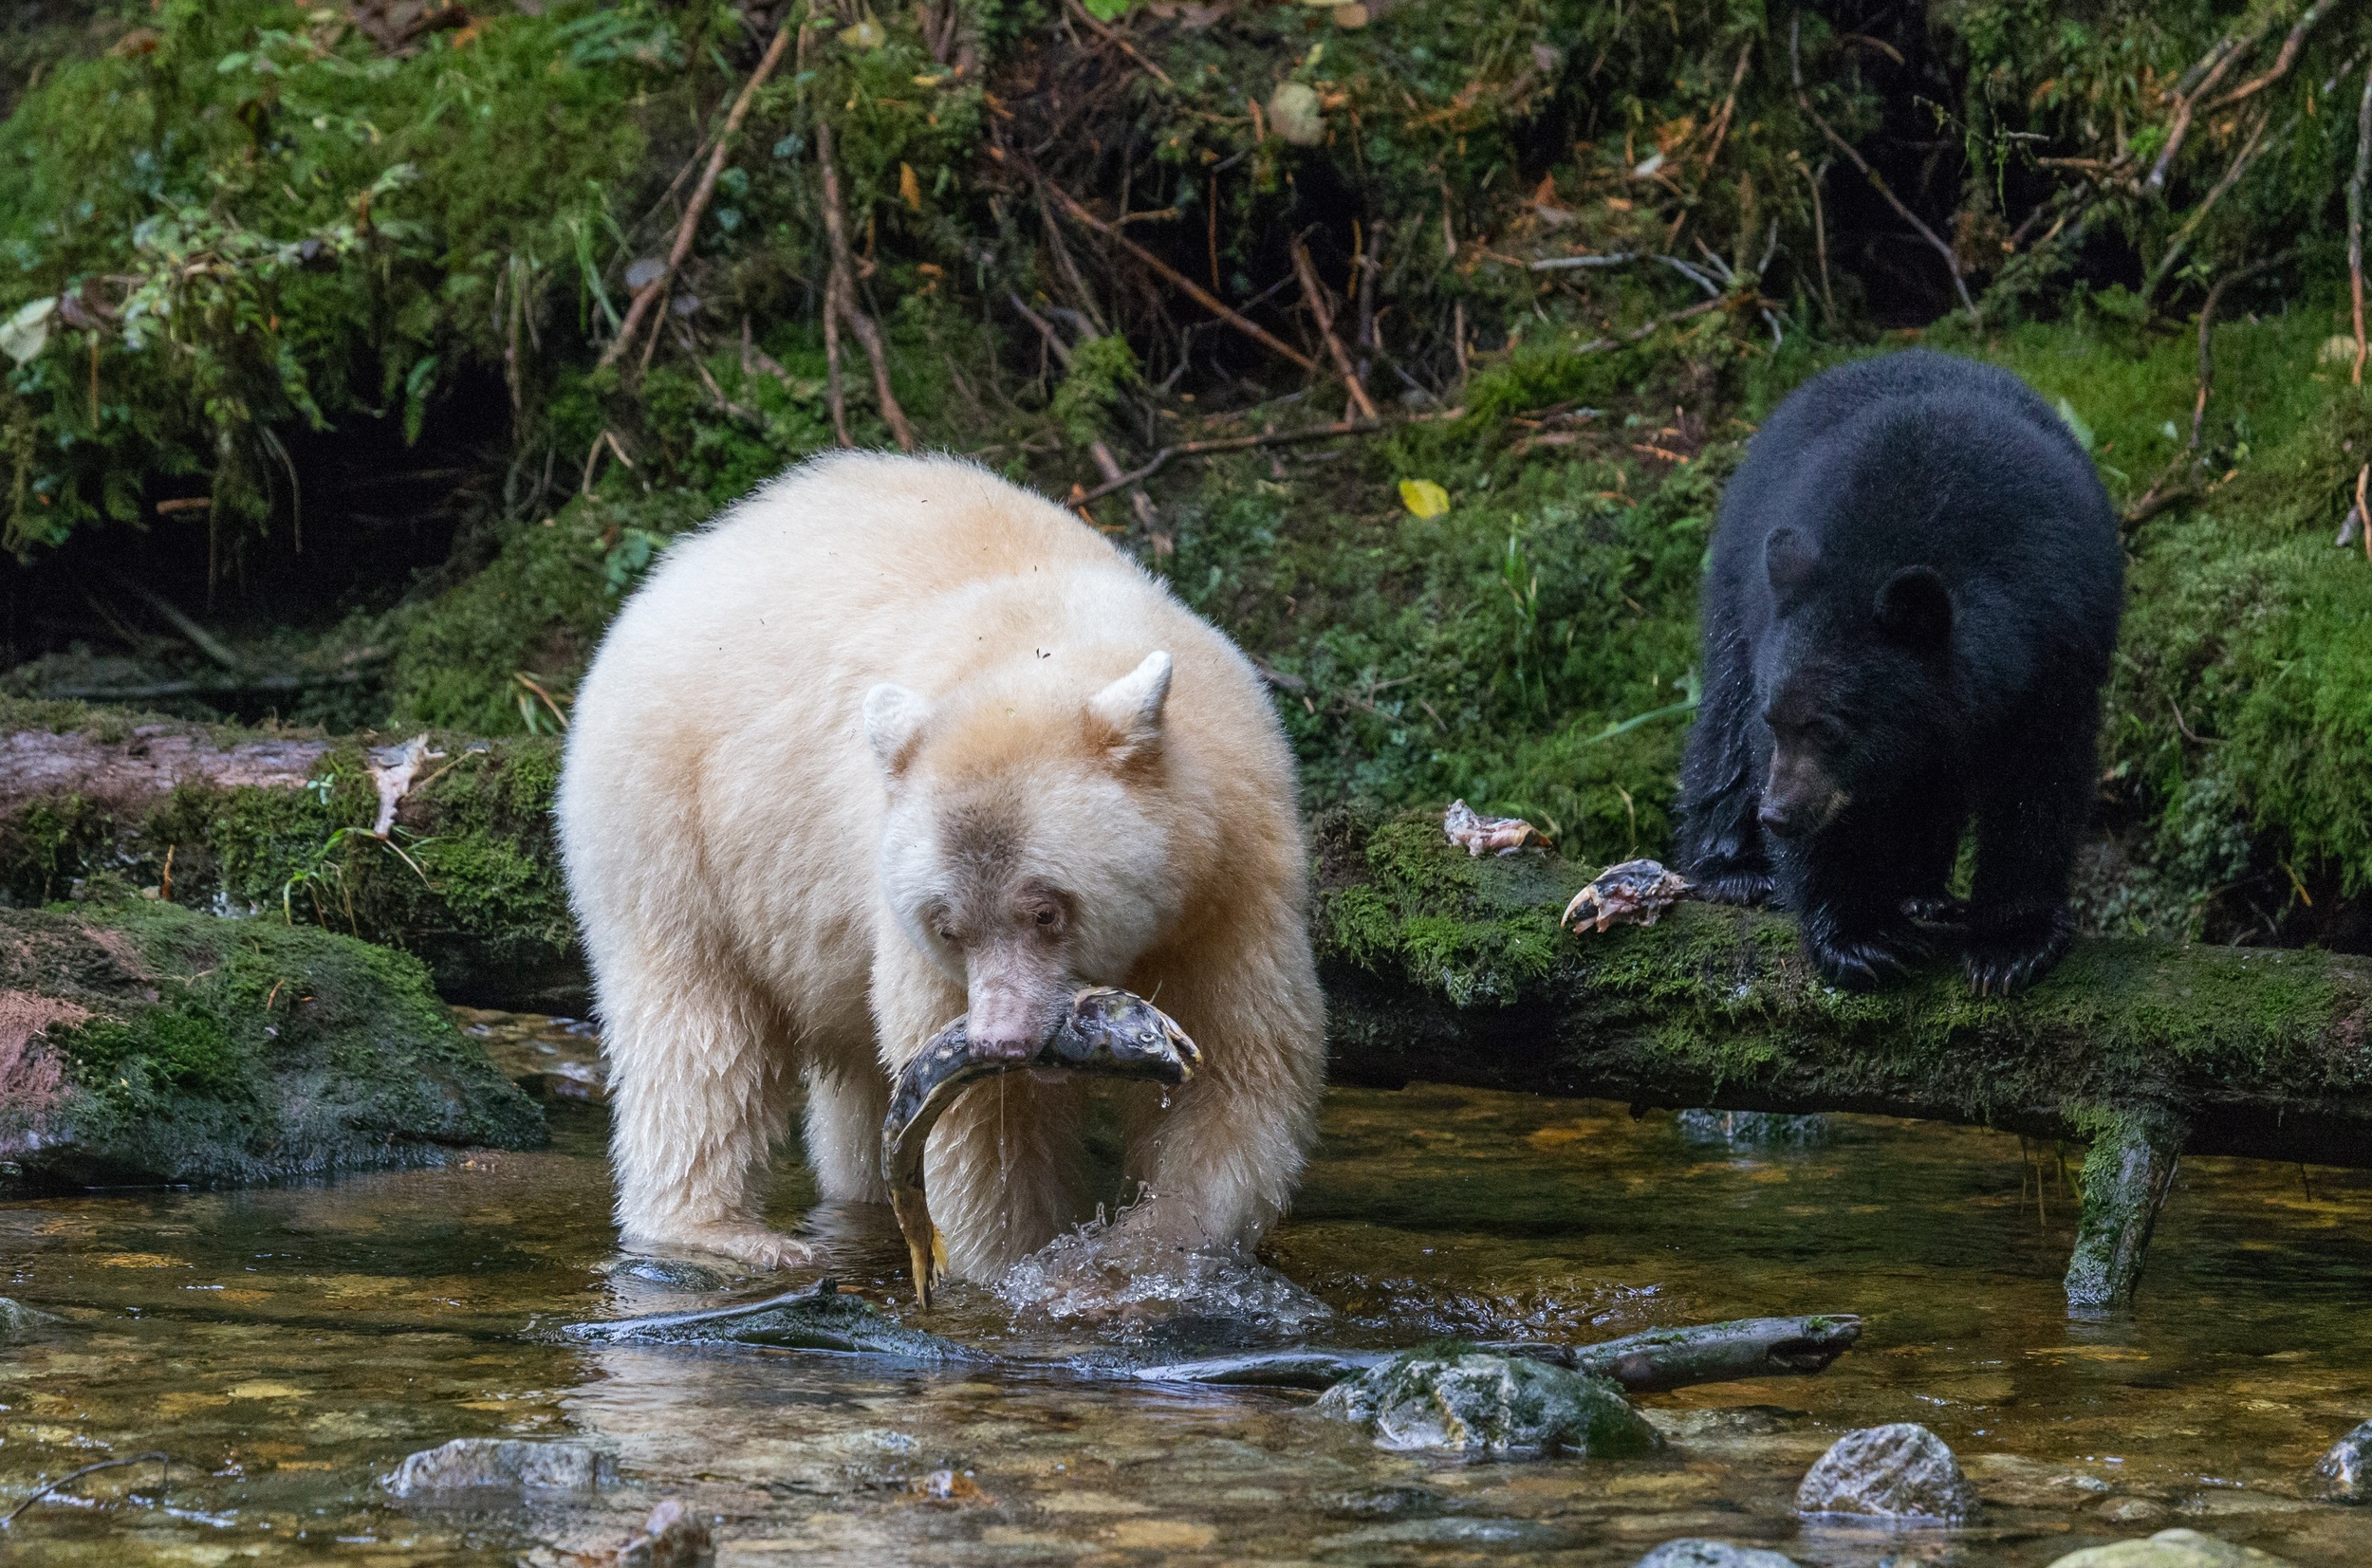 Kermode bears have been known to catch and feast on as many as 80 salmon in one session. Five species of Pacific salmon spawn in the streams of the Great Bear Rainforest. (photo by Jenny Varley)